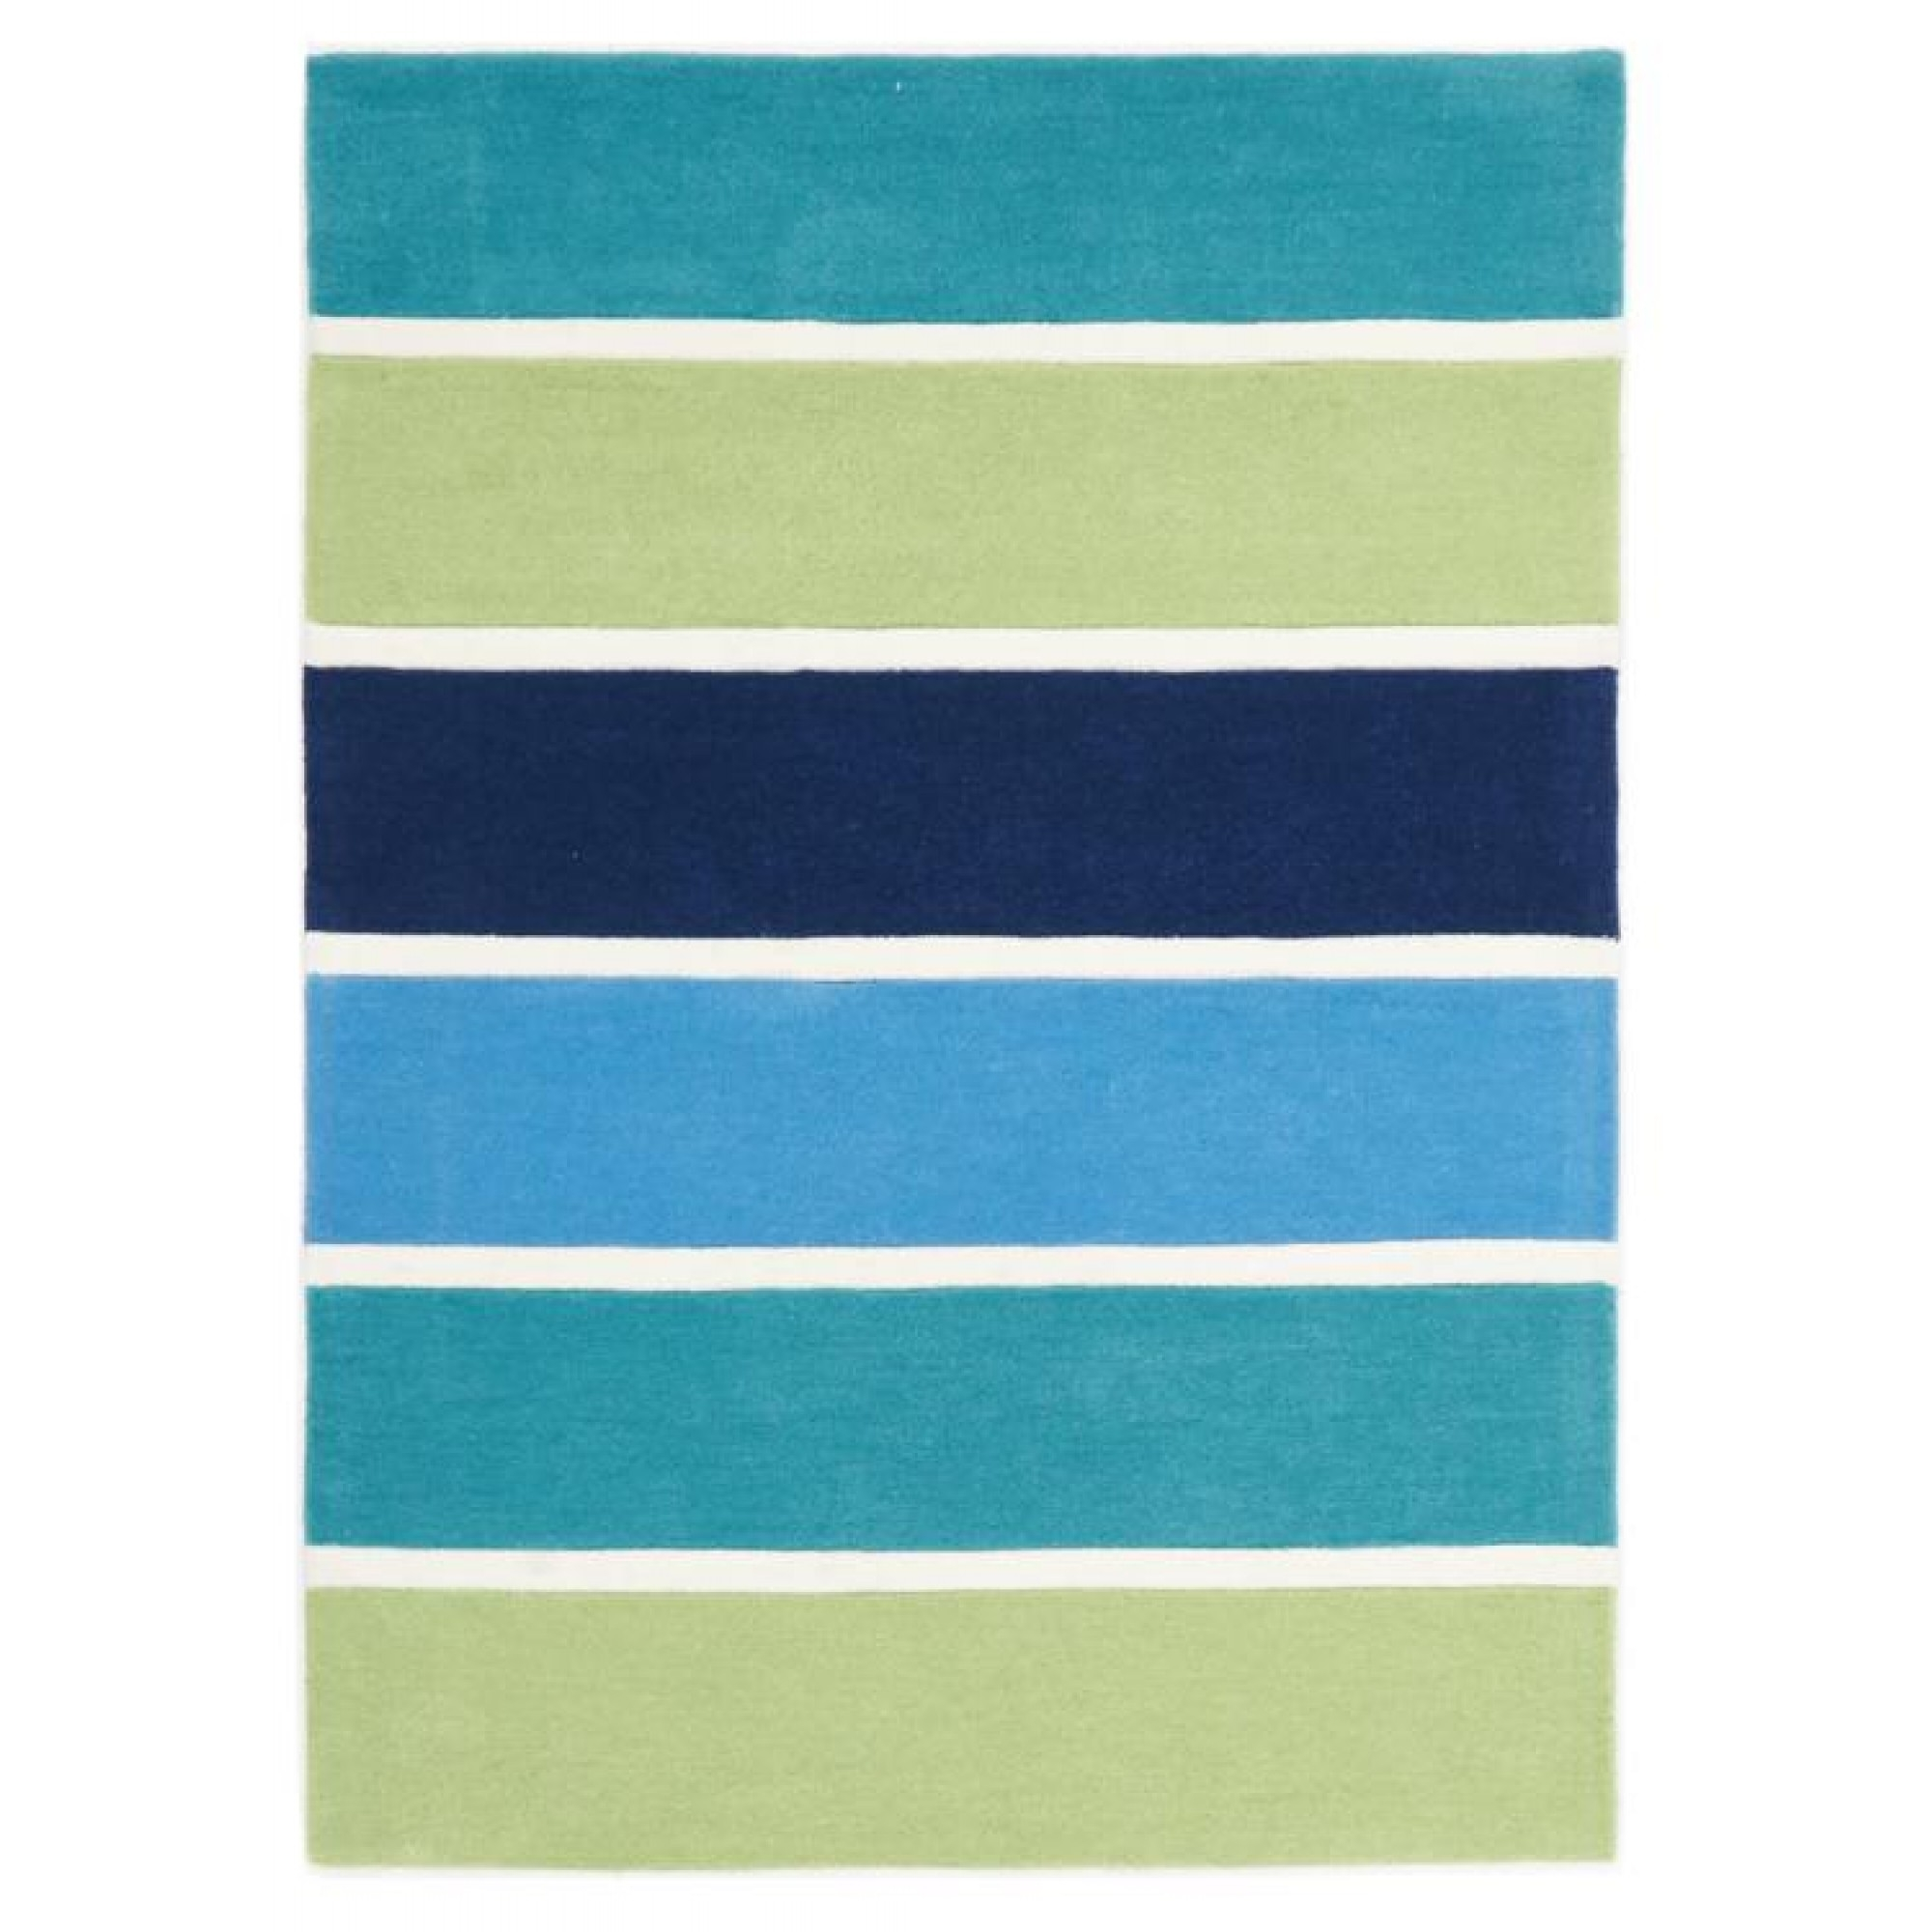 Blue And Green Banded Stripes Kids Floor Rugs Free Shipping Regarding Green Carpet Runners Hallway (#9 of 20)